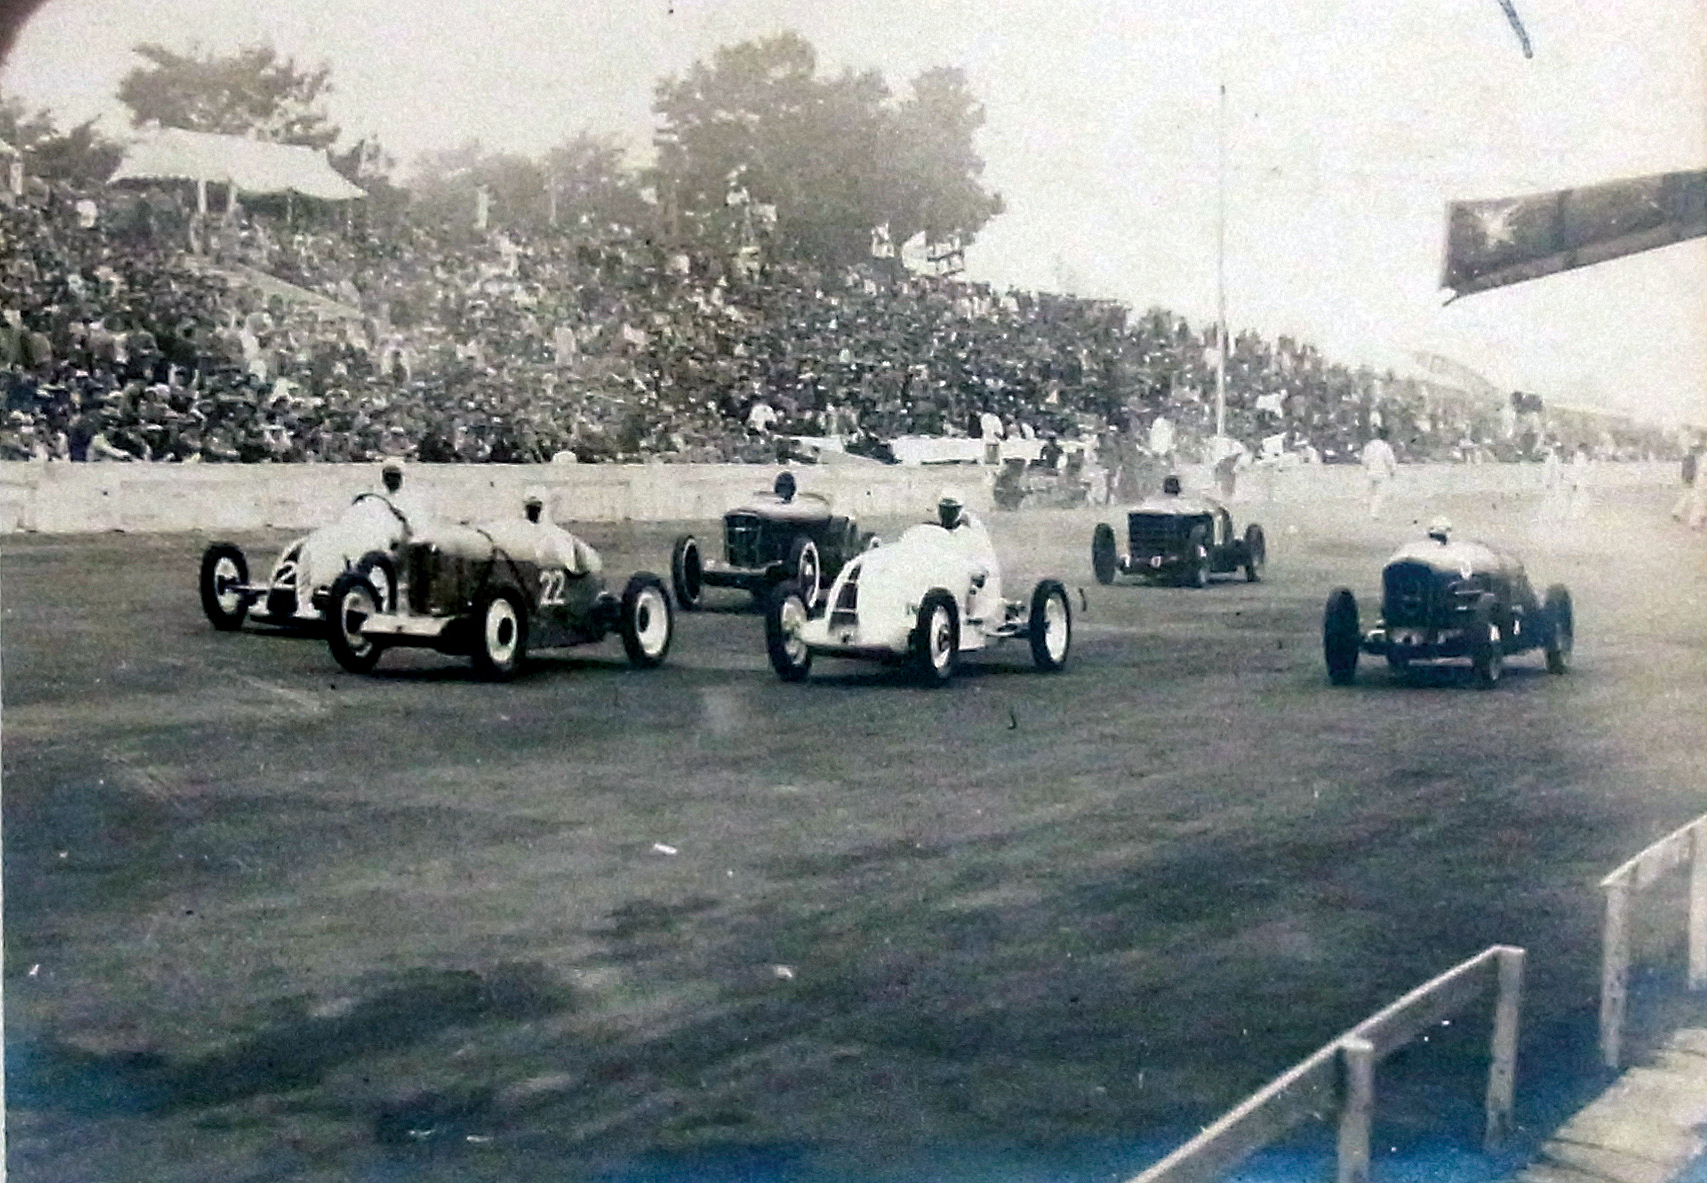 Racers compete at Tamagawa Speedway in 1937. The speedway was Japan's first permanent motor racing circuit. | TAMAGAWA SPEEDWAY SOCIETY